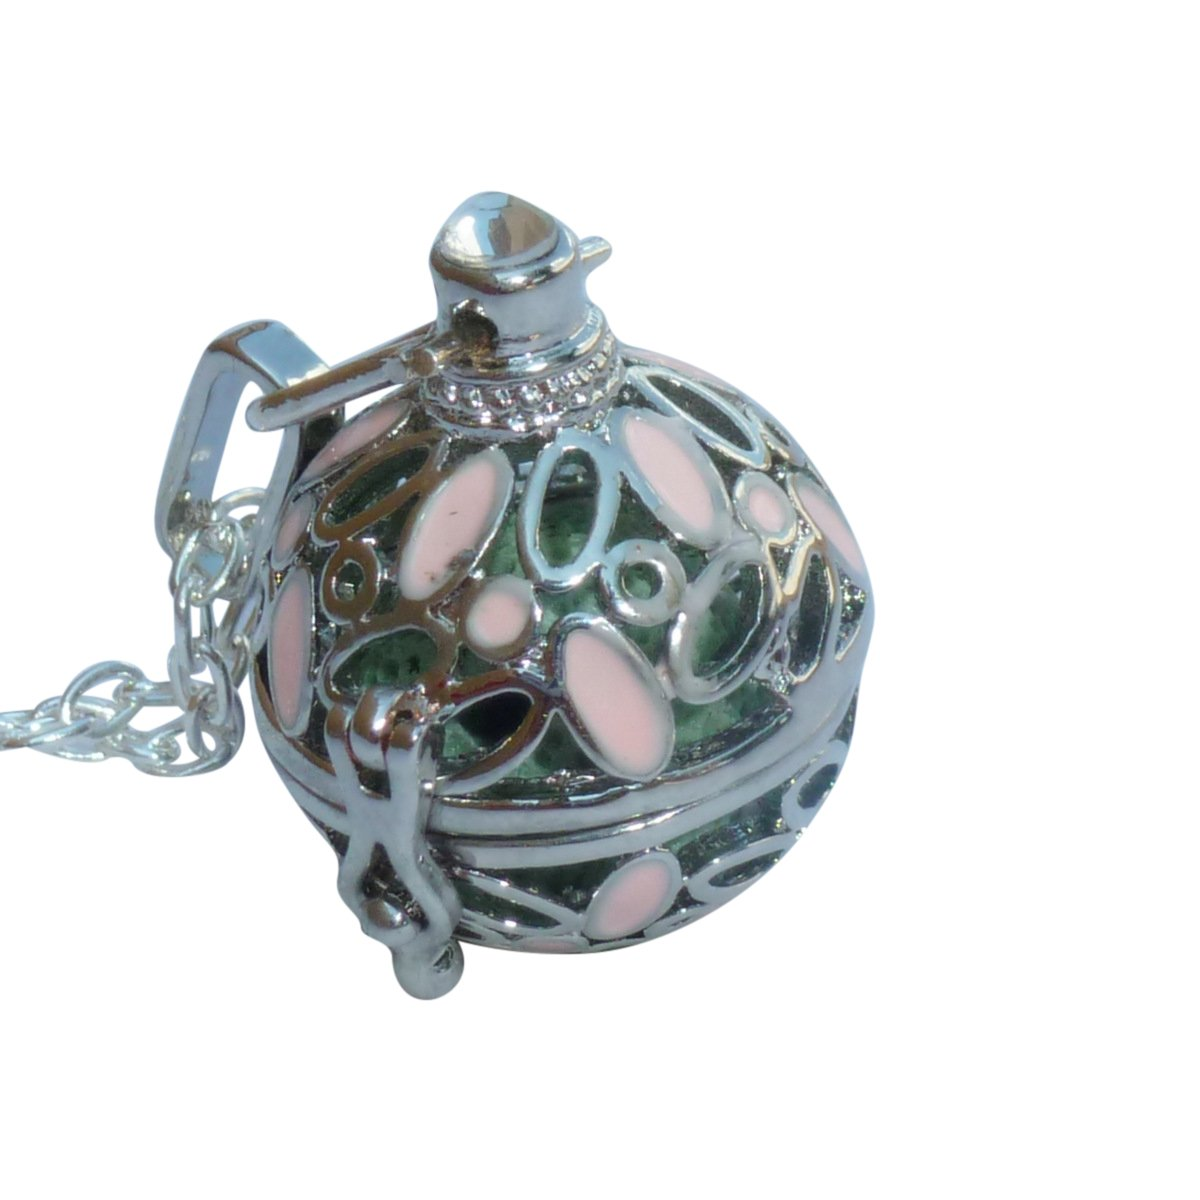 UMBRELLALABORATORY YOur perSOnal STYlish Essential oil necklace Steampunk ball with pink flowers d2 0